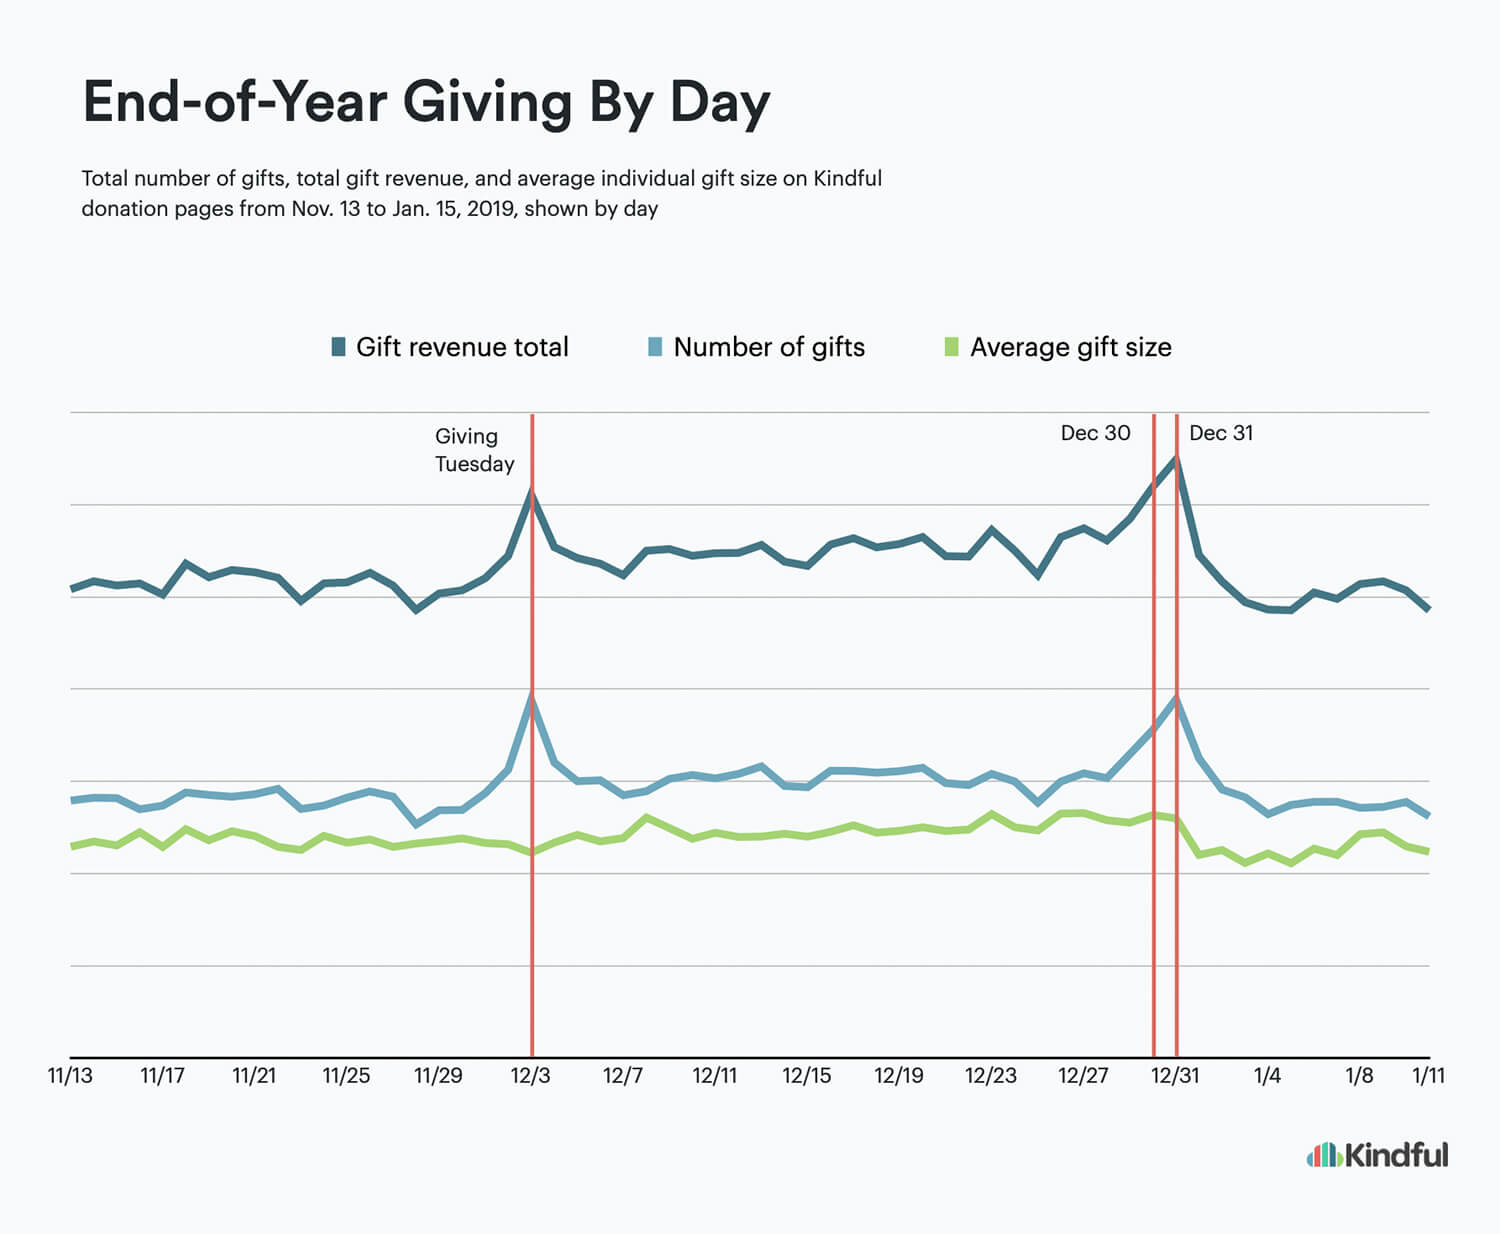 Year-end giving statistics showing total online giving by day in 2019 from Thanksgiving through to Dec 31